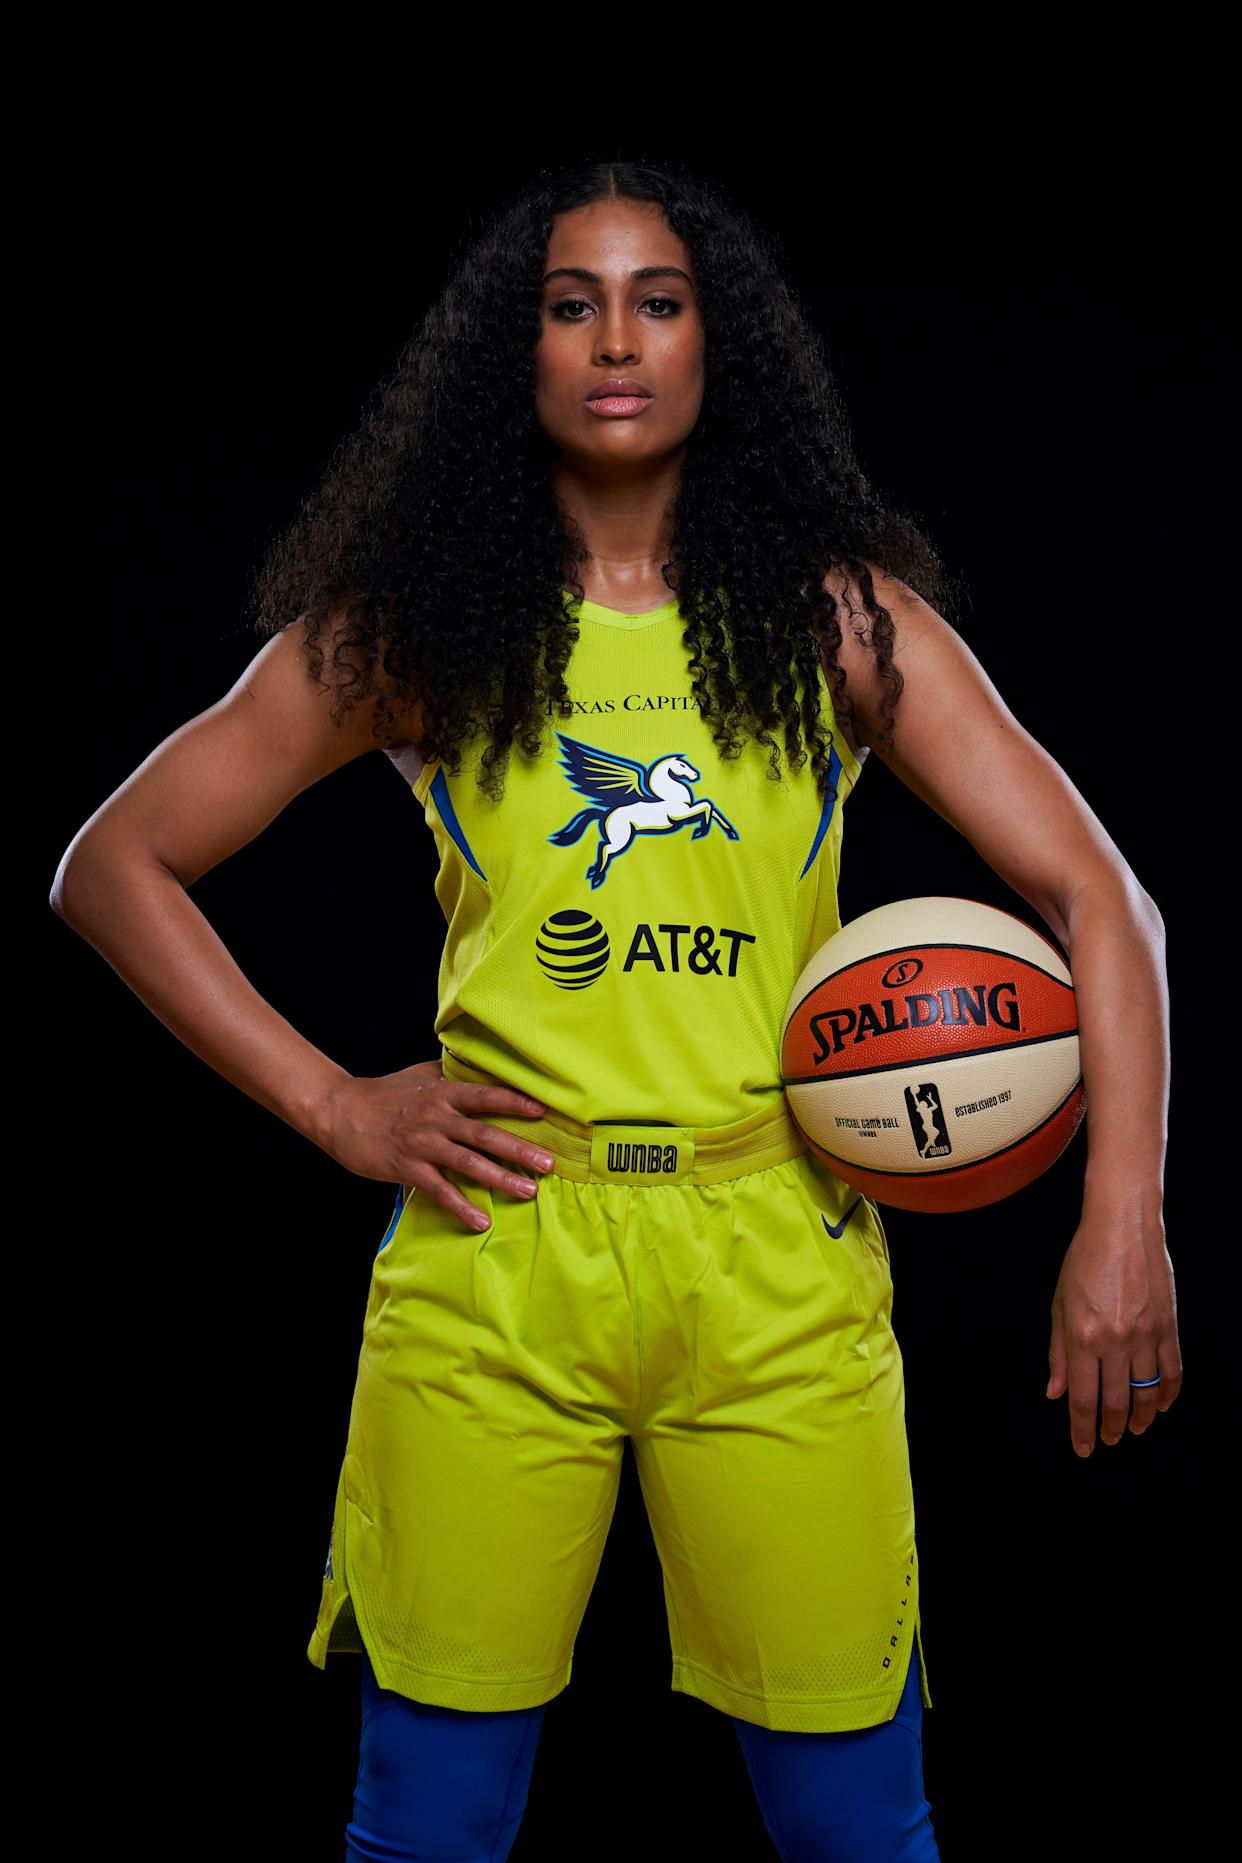 Skylar Diggins-Smith poses in May for a Dallas Wings player photo. She never played for the team this season after taking two months off for postpartum depression. (Photo: Cooper Neill via Getty Images)